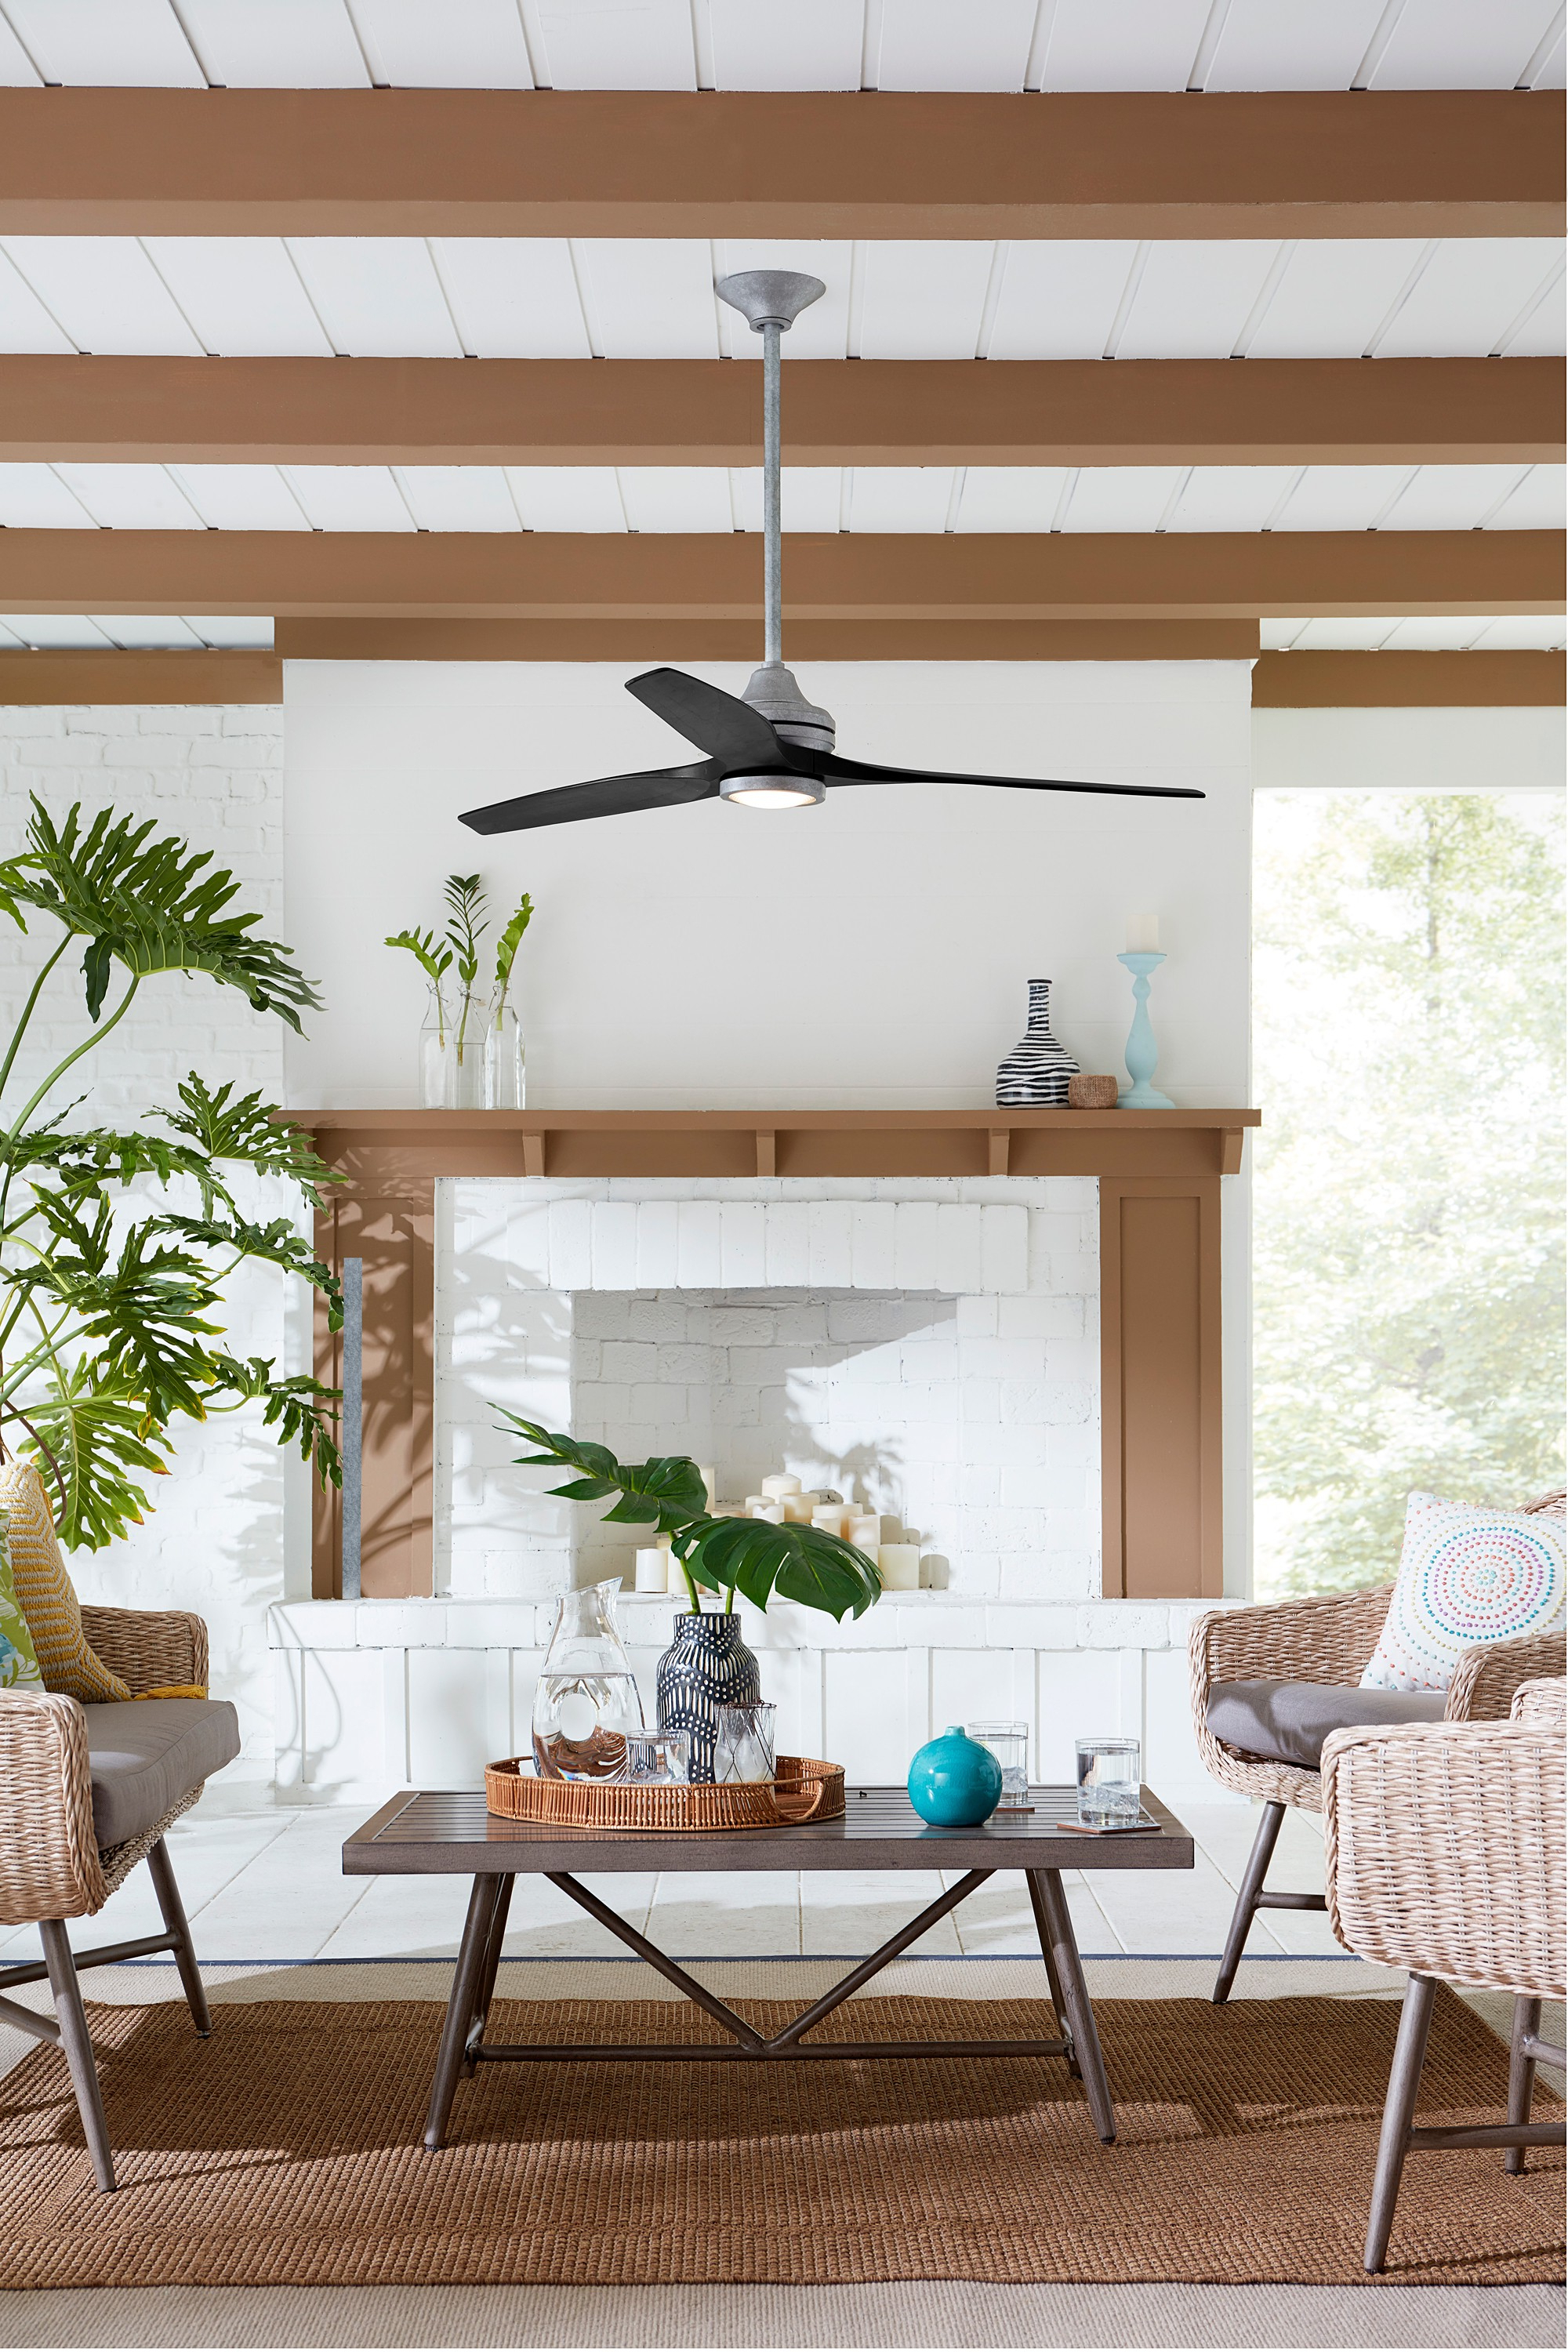 Spitfire – Fans Pertaining To Well Liked Spitfire 3 Blade Ceiling Fans (View 17 of 20)